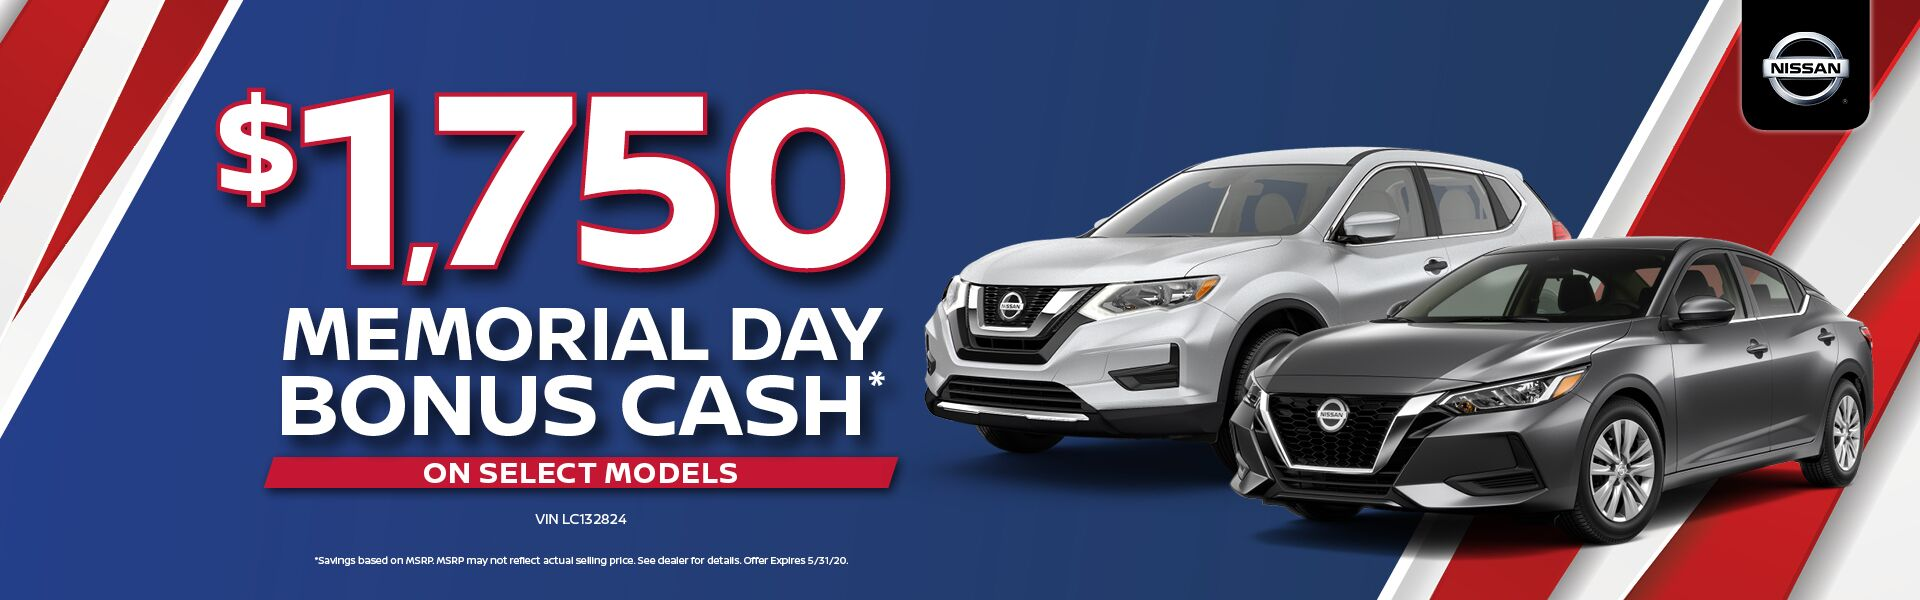 $1,750 Memorial Day Nissan Bonus Cash on Select Models